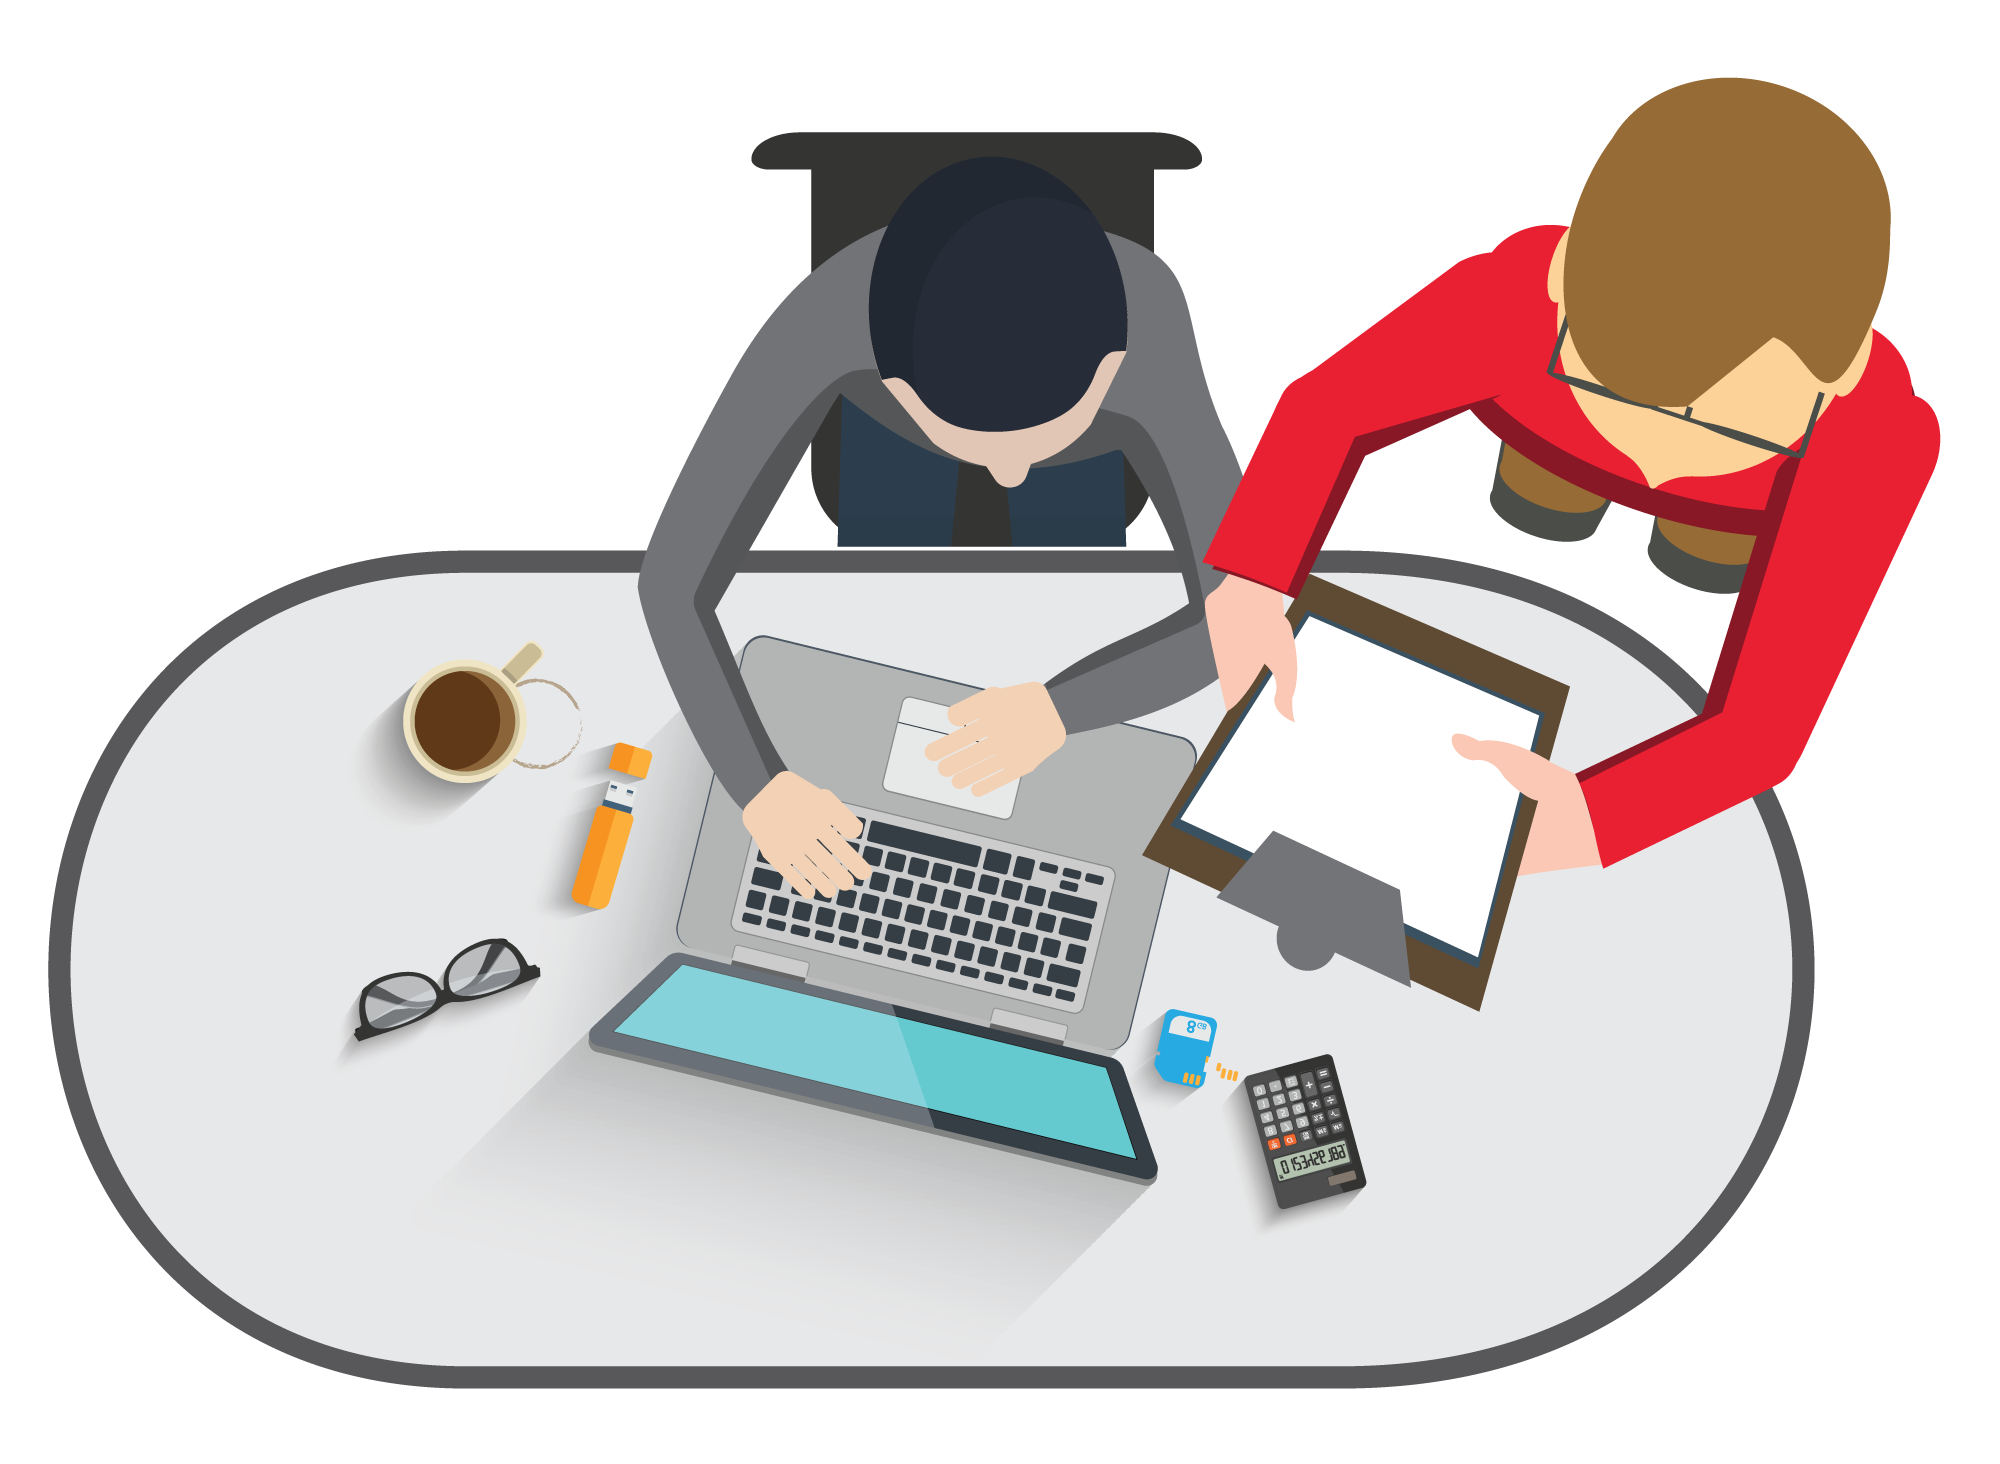 Debate clipart employee referral. How to perform usability